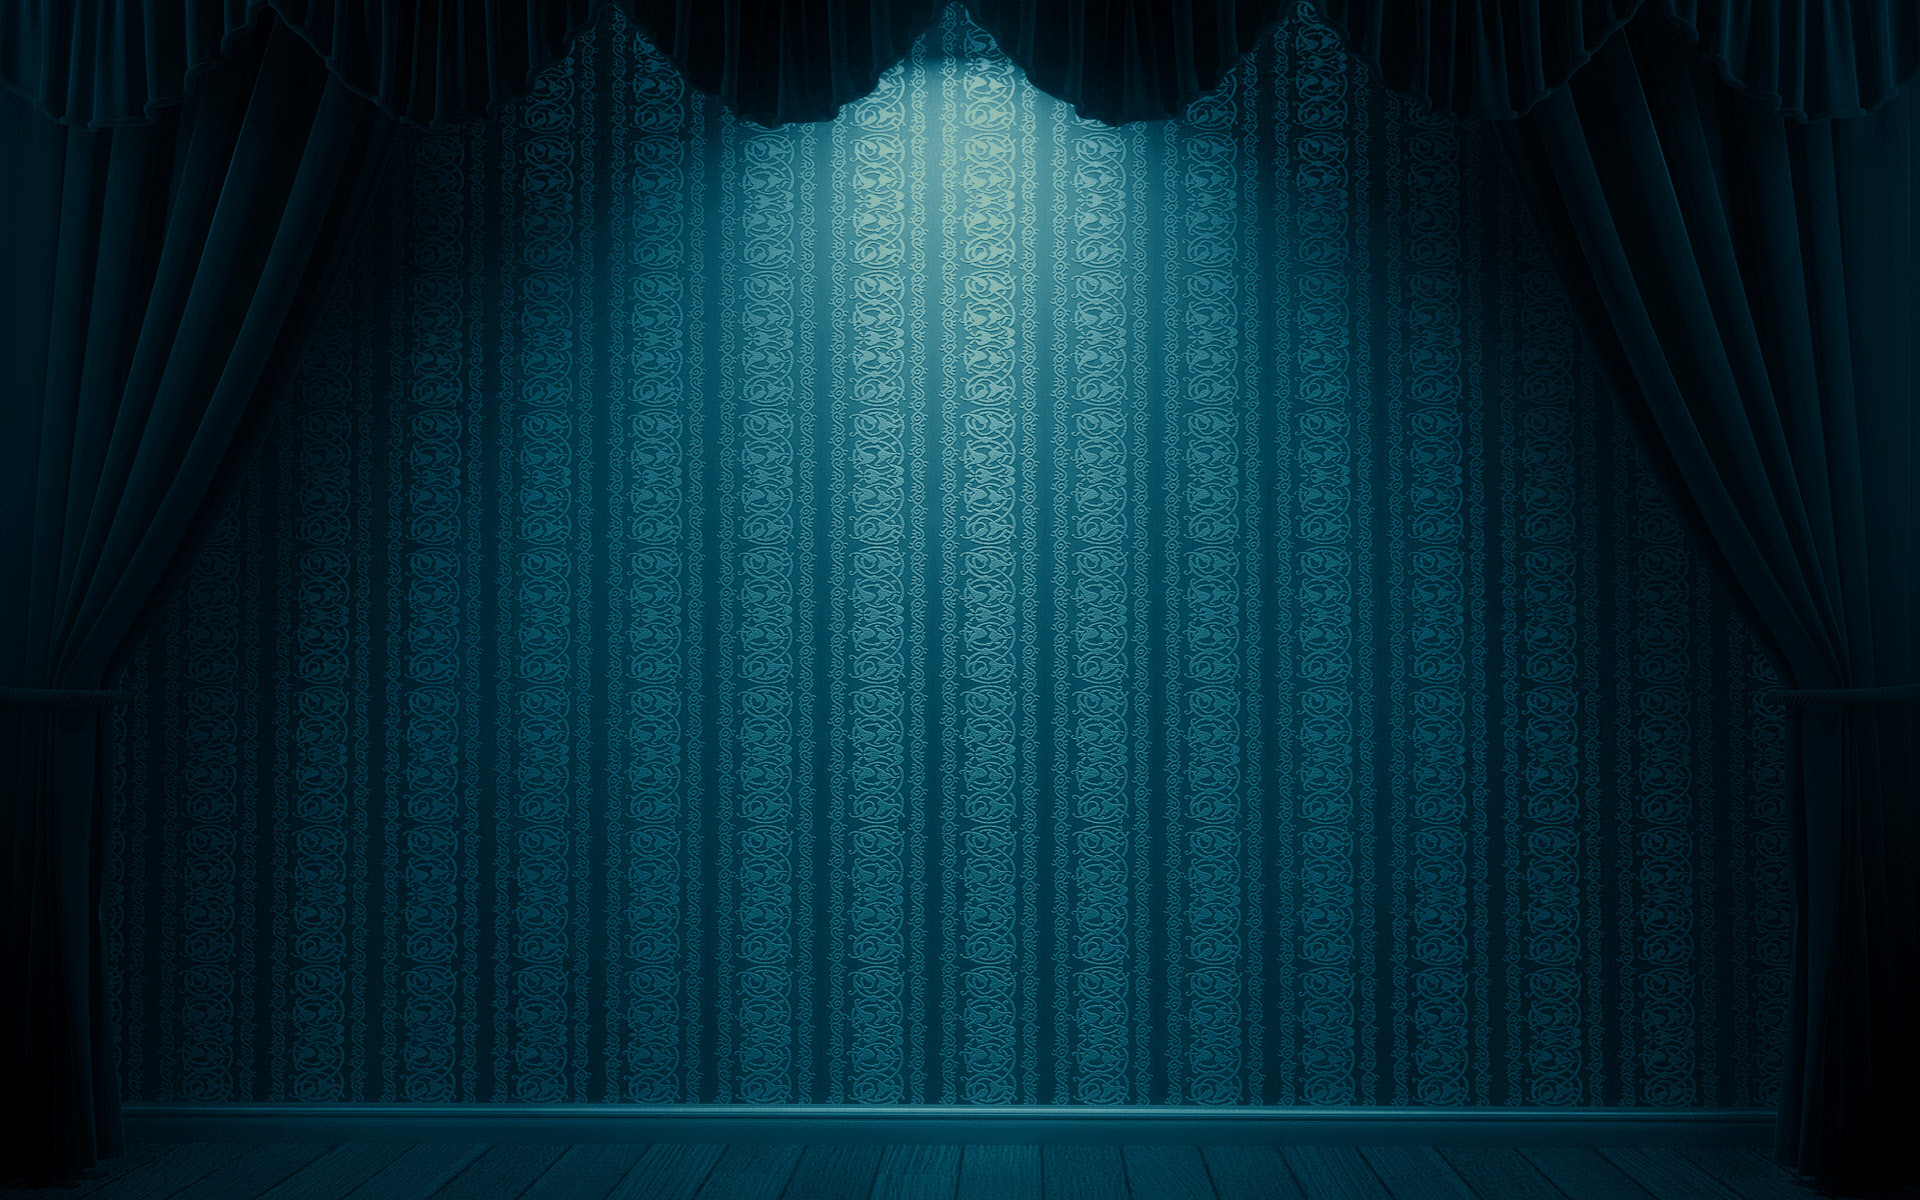 Stage Background Images 1